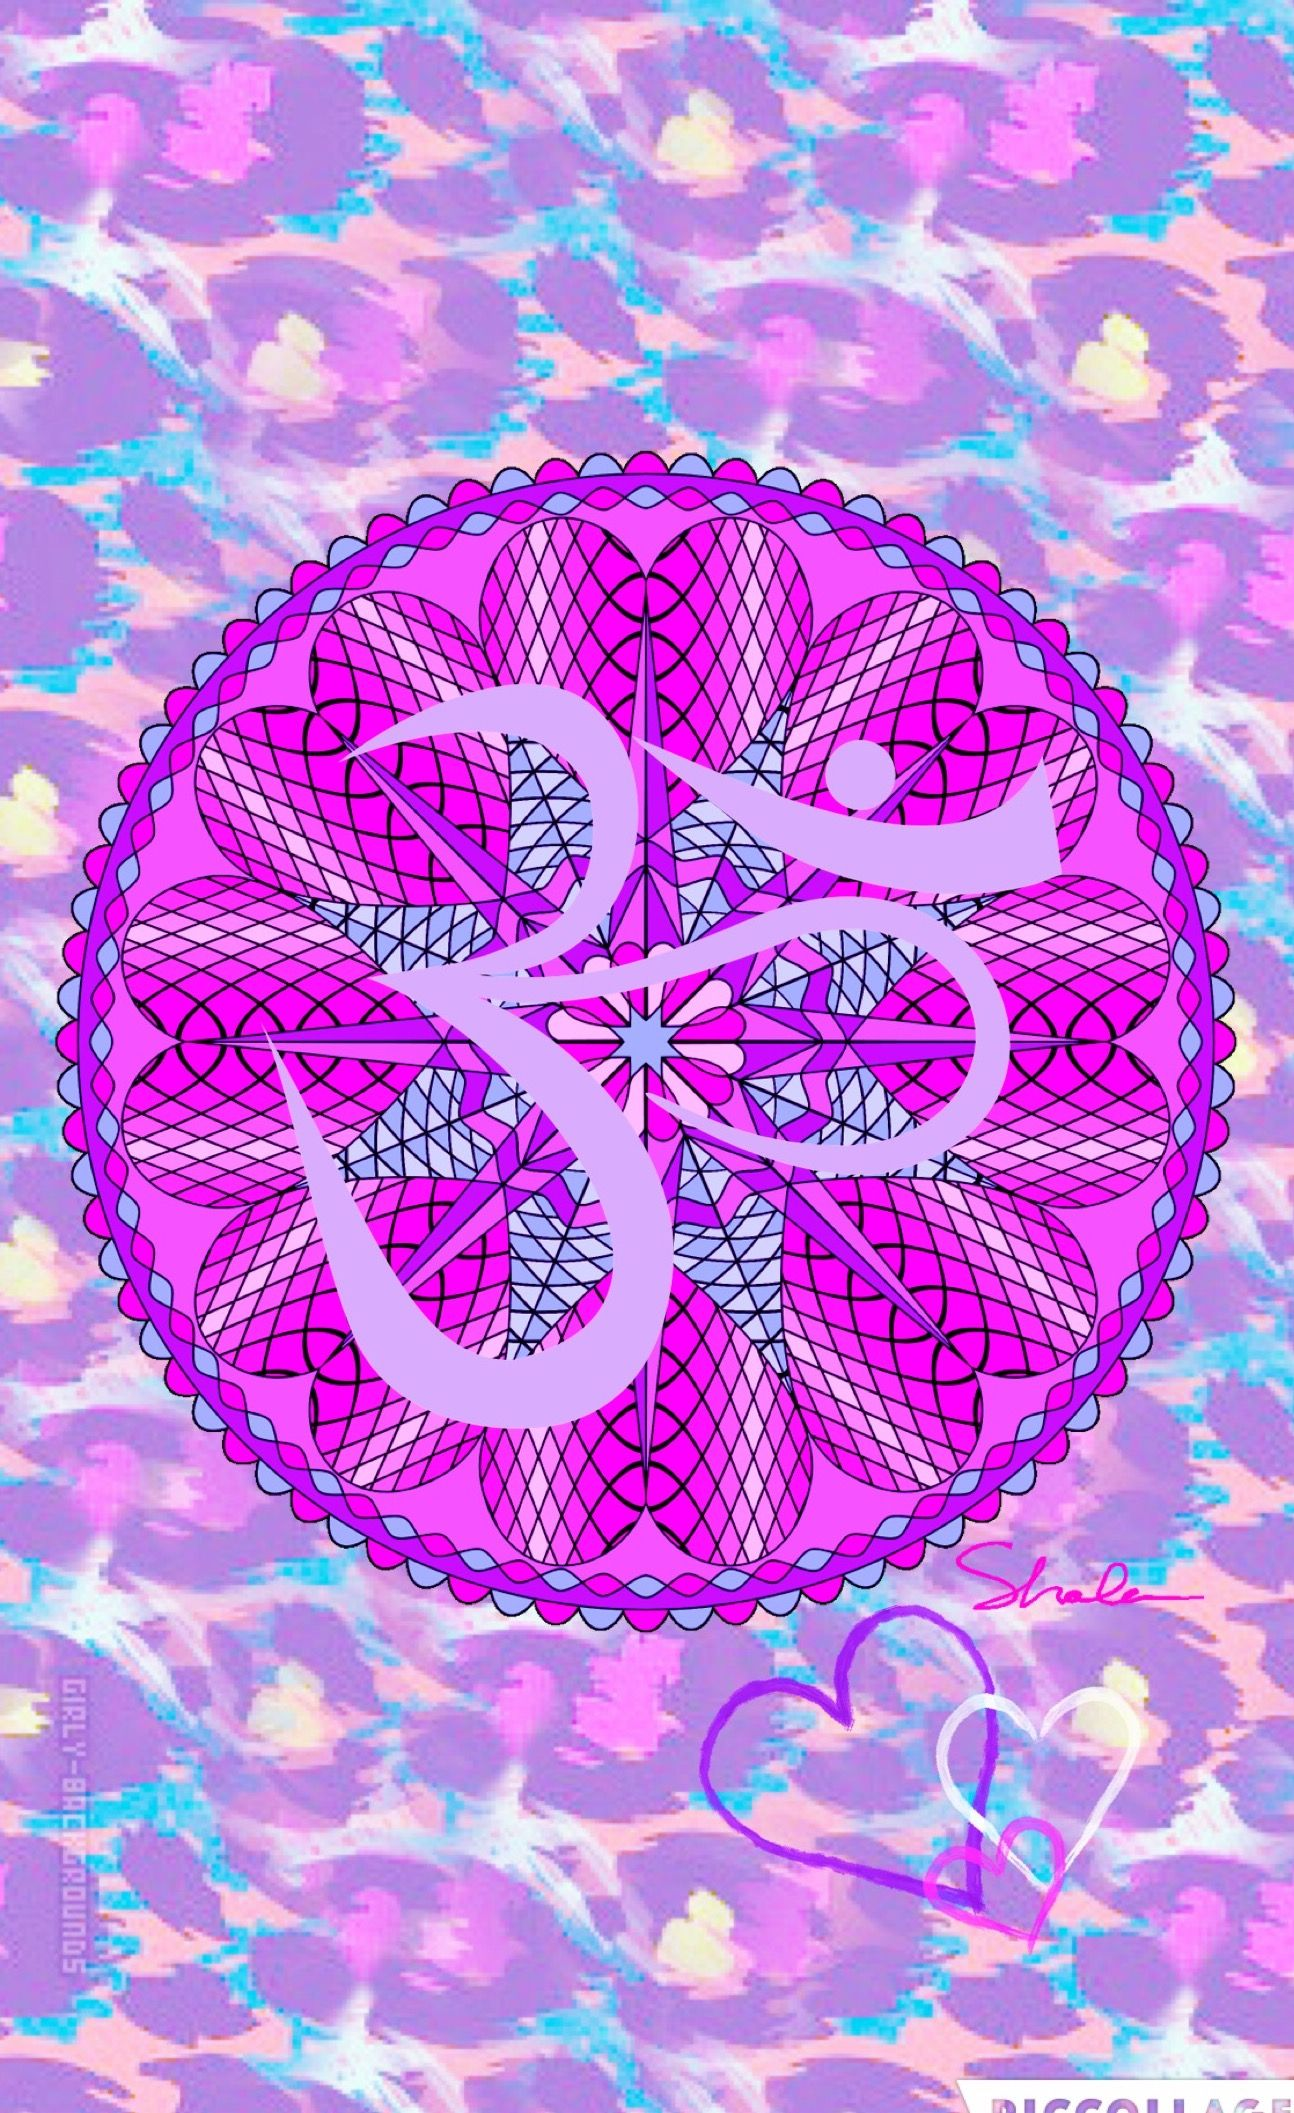 Wallpaper iphone mandala - Mandala Om By Me